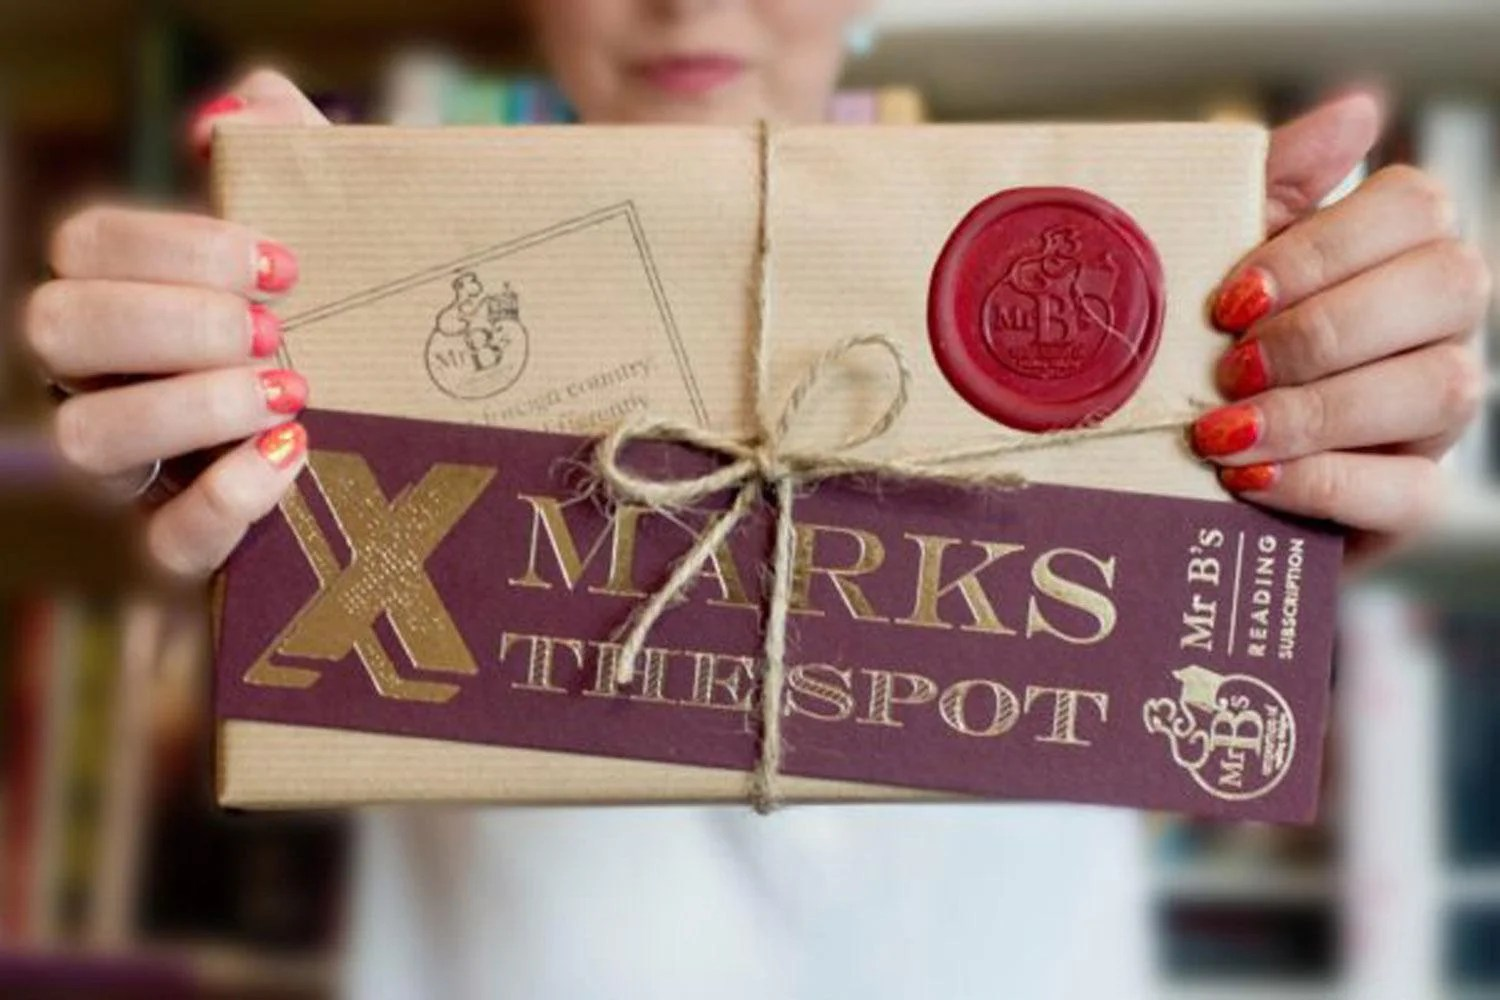 Best book subscription boxes in the UK